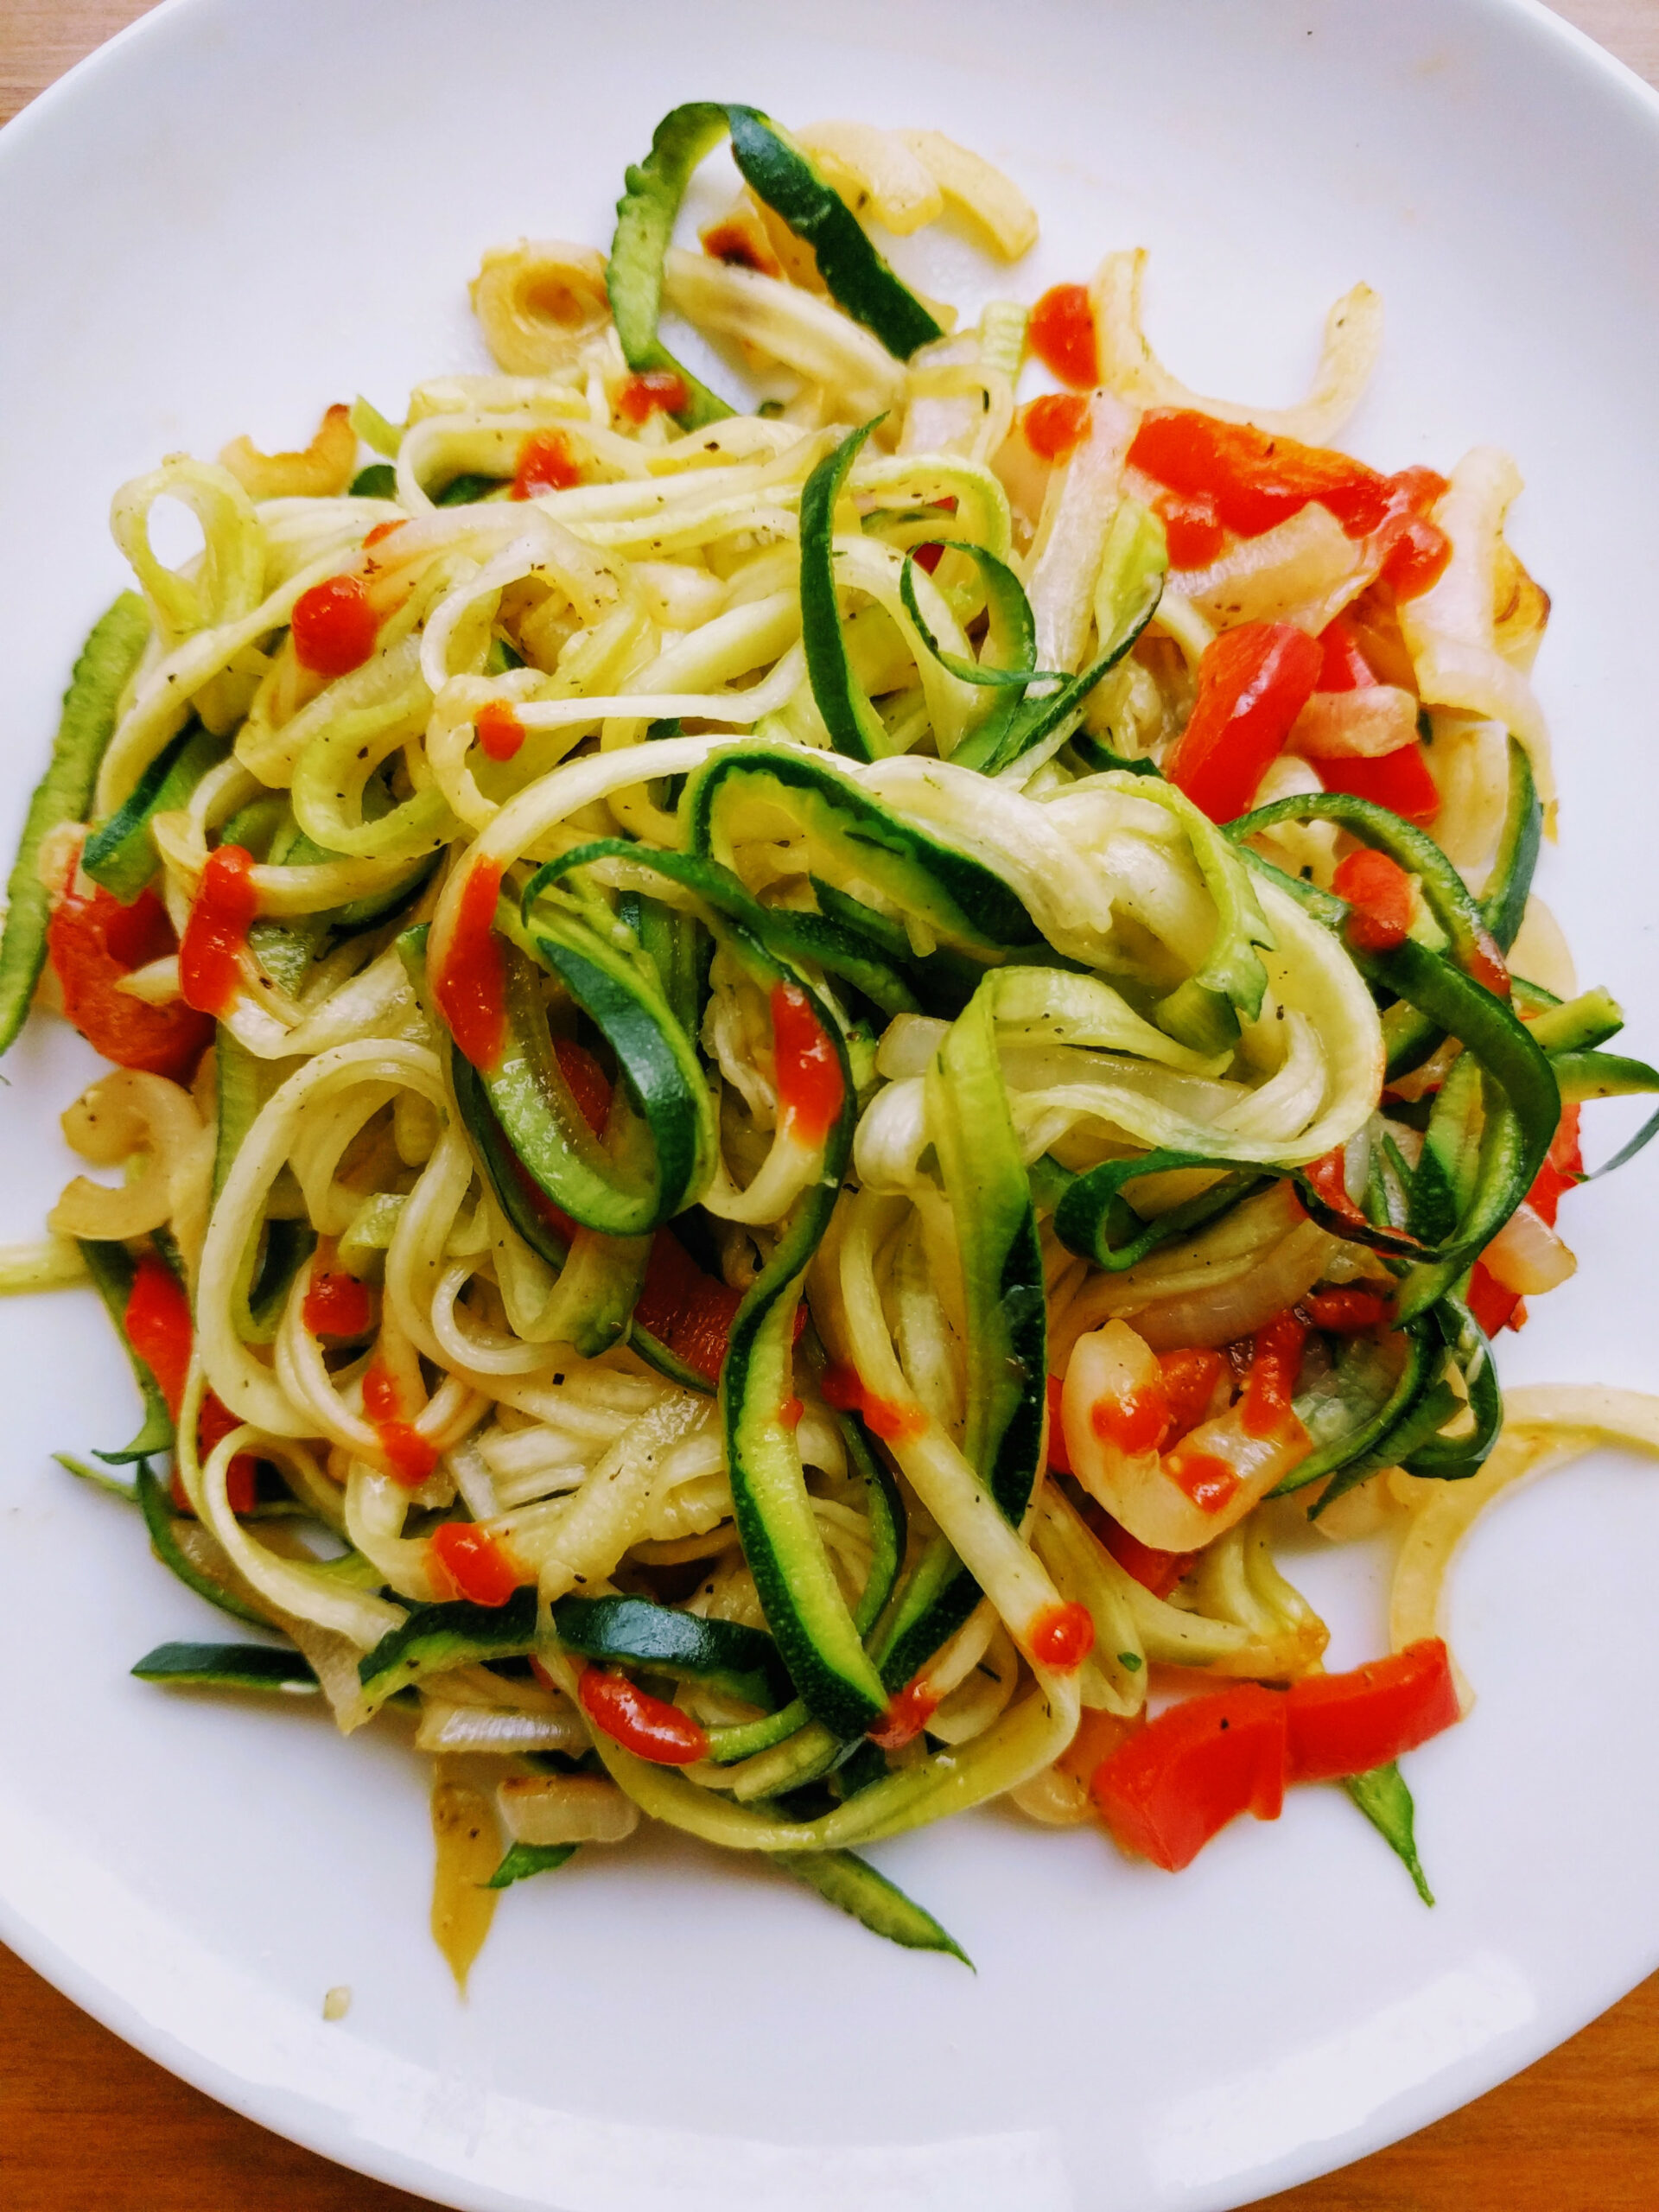 Zucchini Noodles - Zoodles Recipe | Cooking Healthy - healthy recipes zoodles